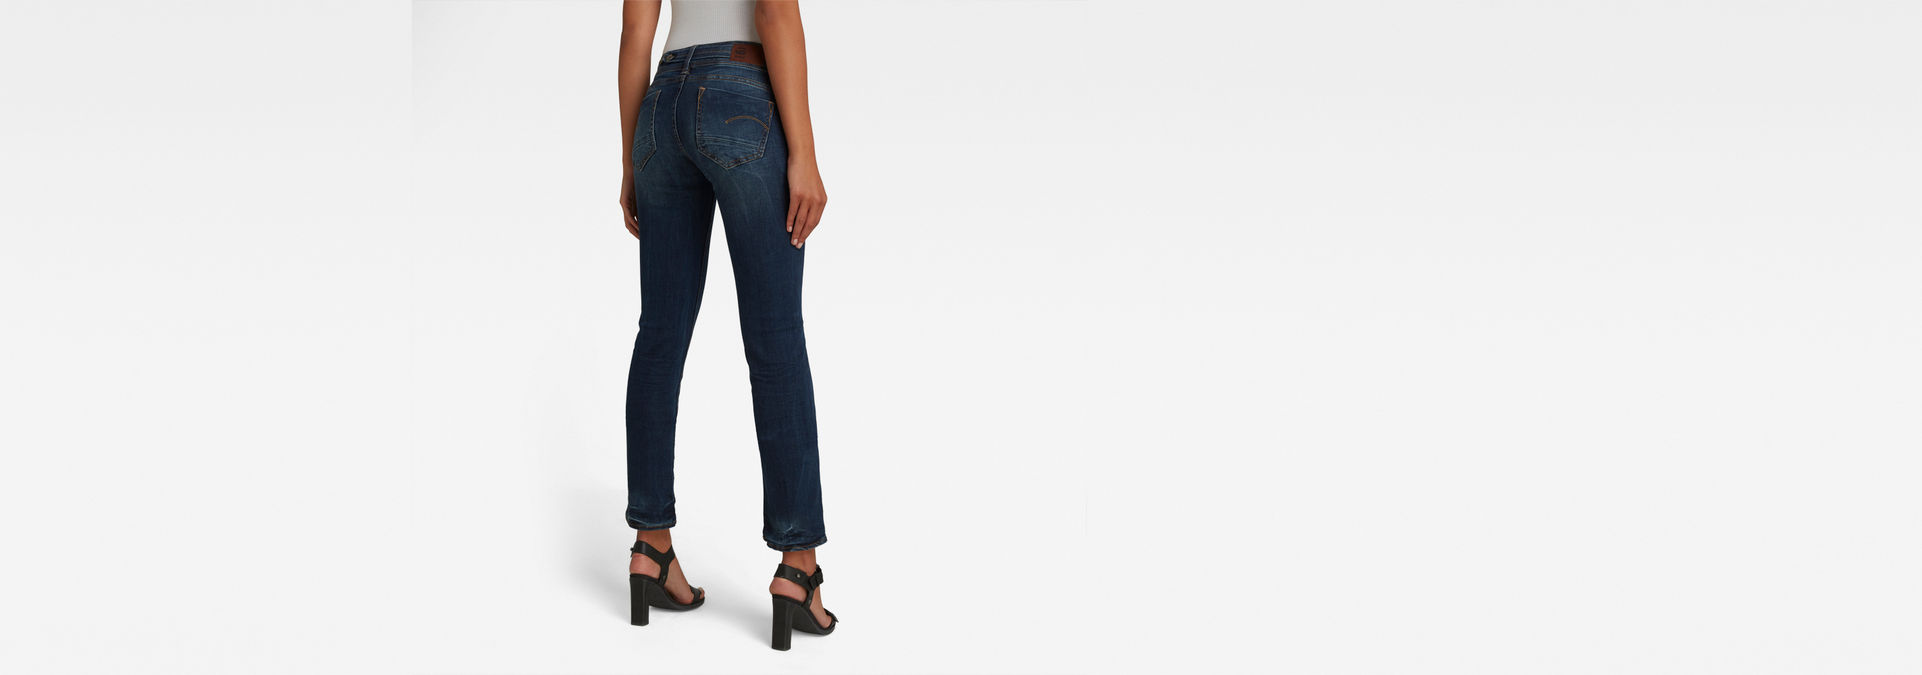 Midge Saddle Straight Jeans | Dark Aged | Femmes | G Star RAW®